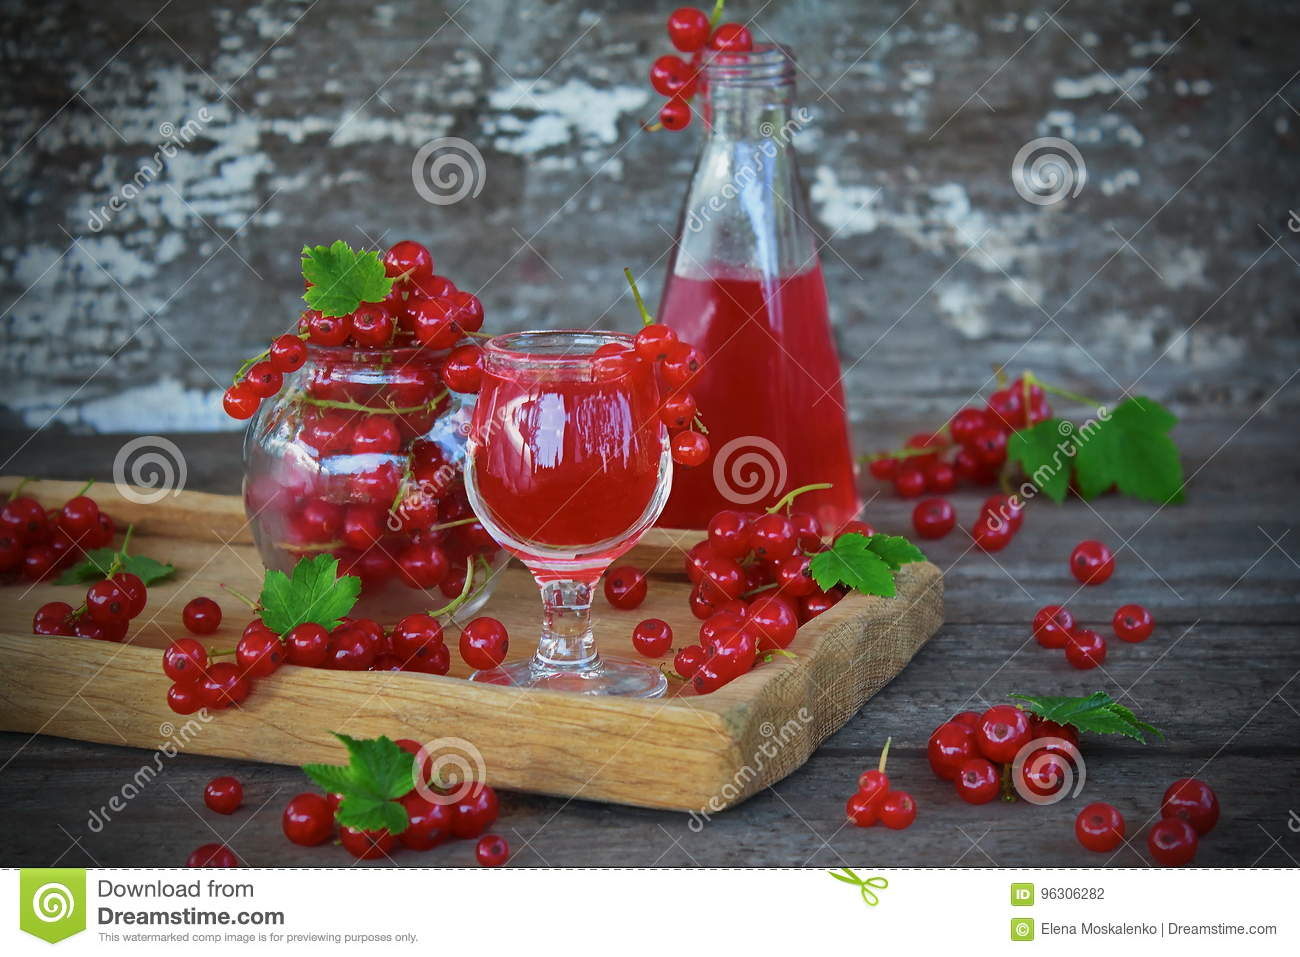 Liqueur of red currant in the glass